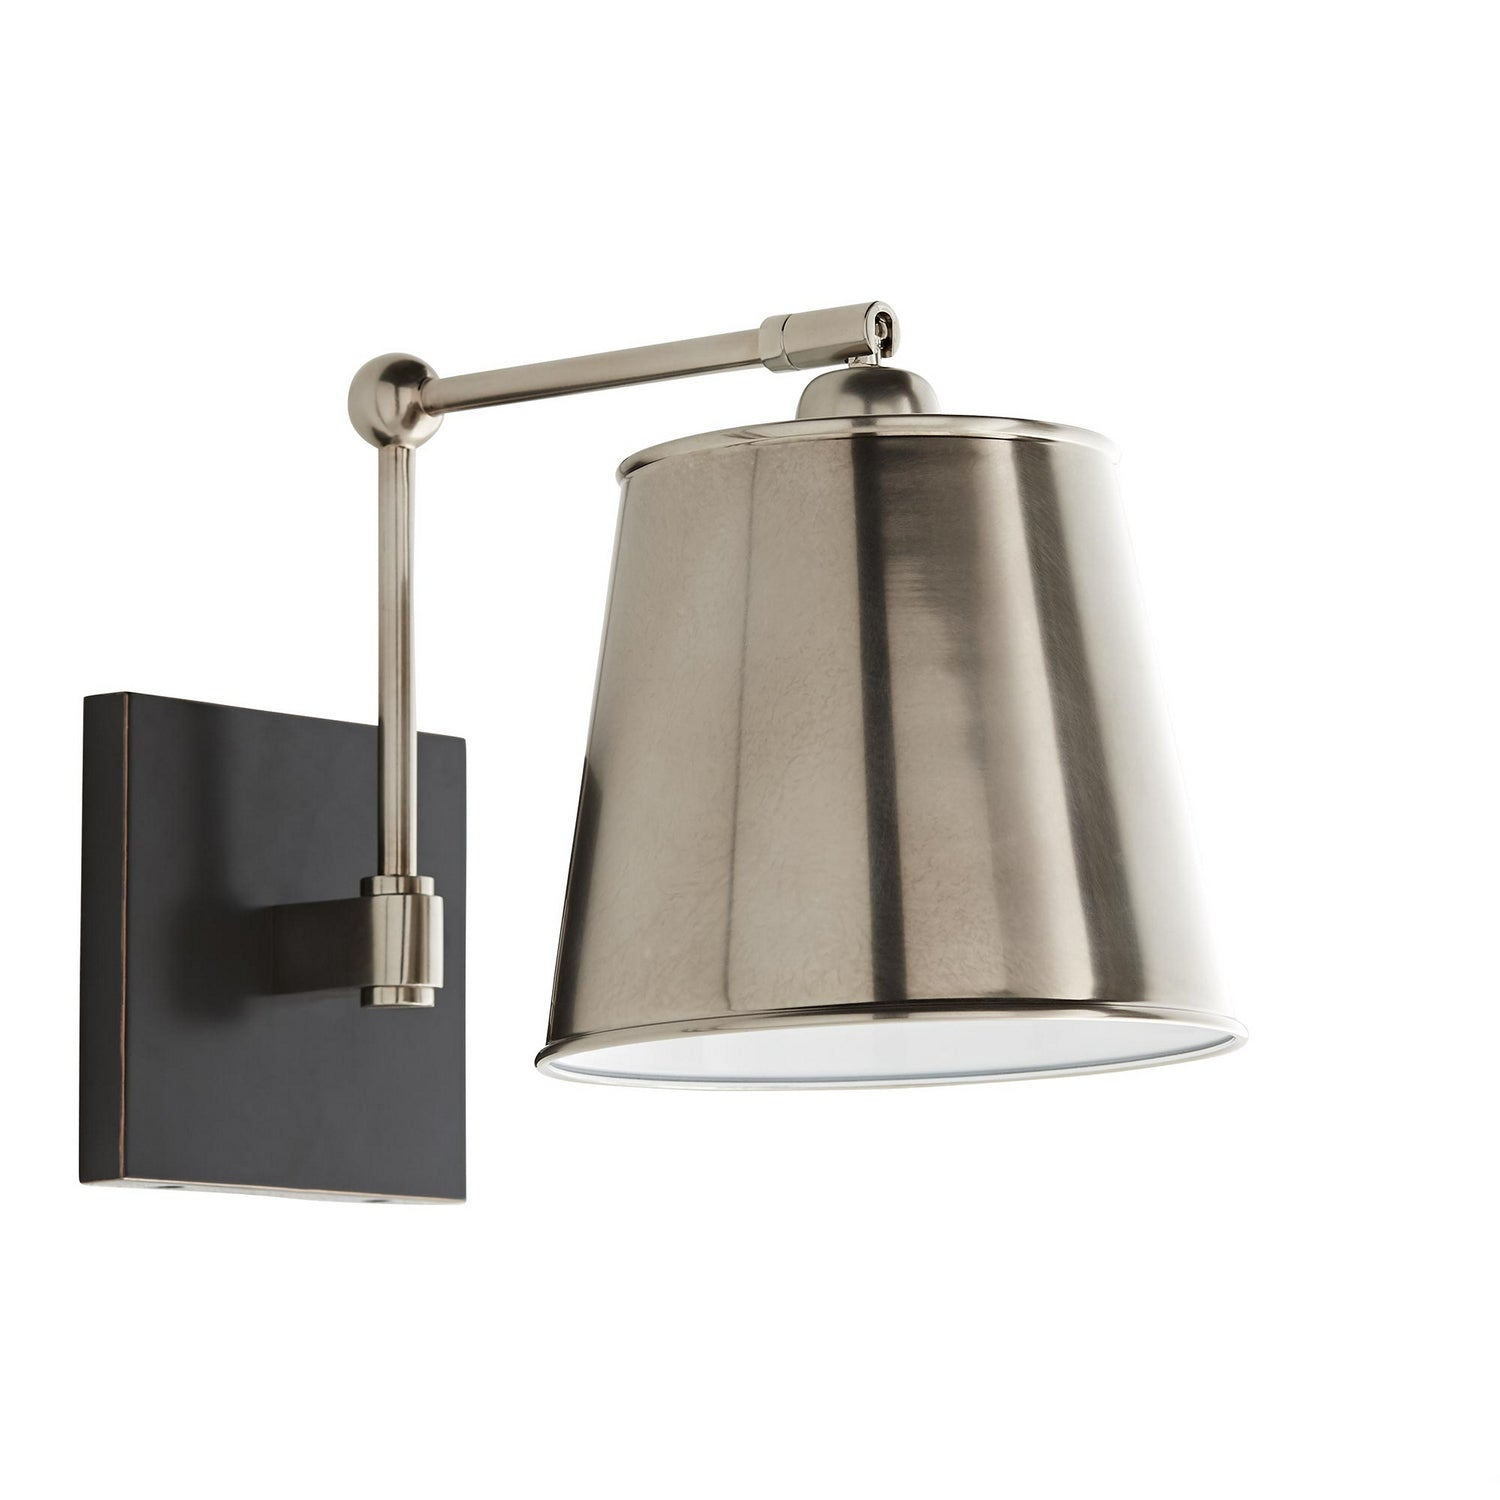 Arteriors - One Light Wall Sconce - Watson - Vintage Silver